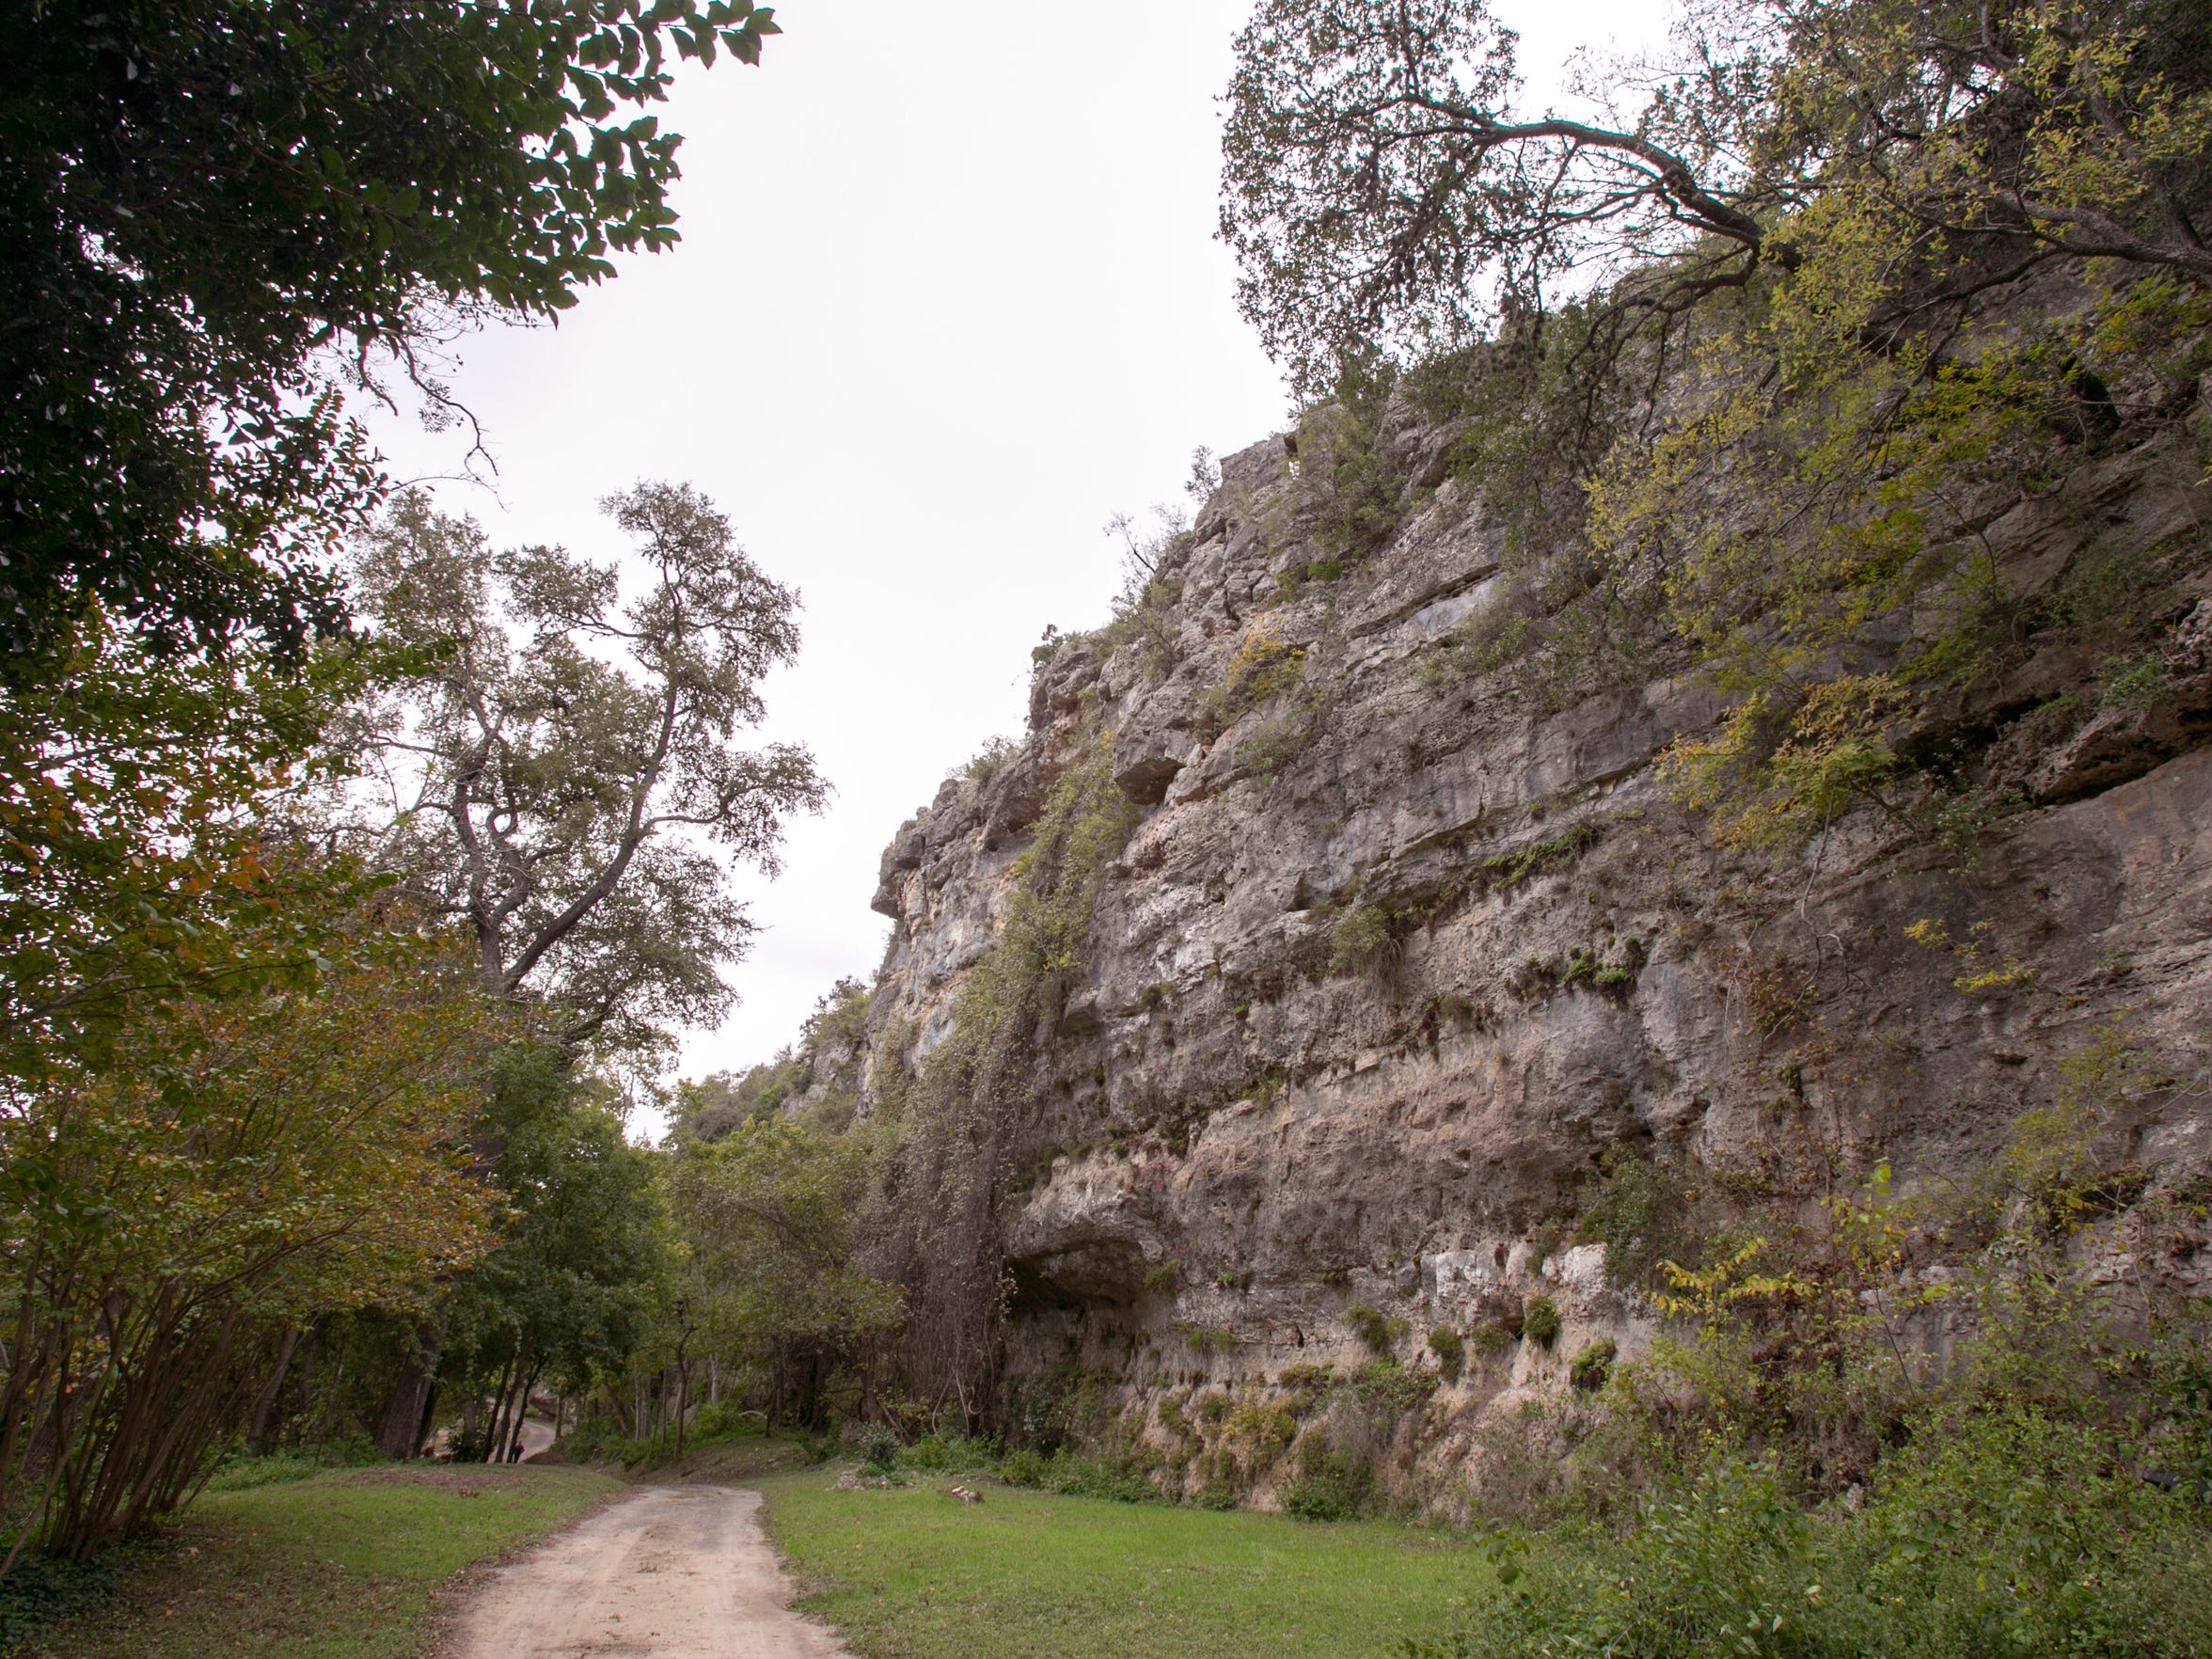 The cliff where Brad Halsey perished, which is on private property near the Guadalupe River in Texas.